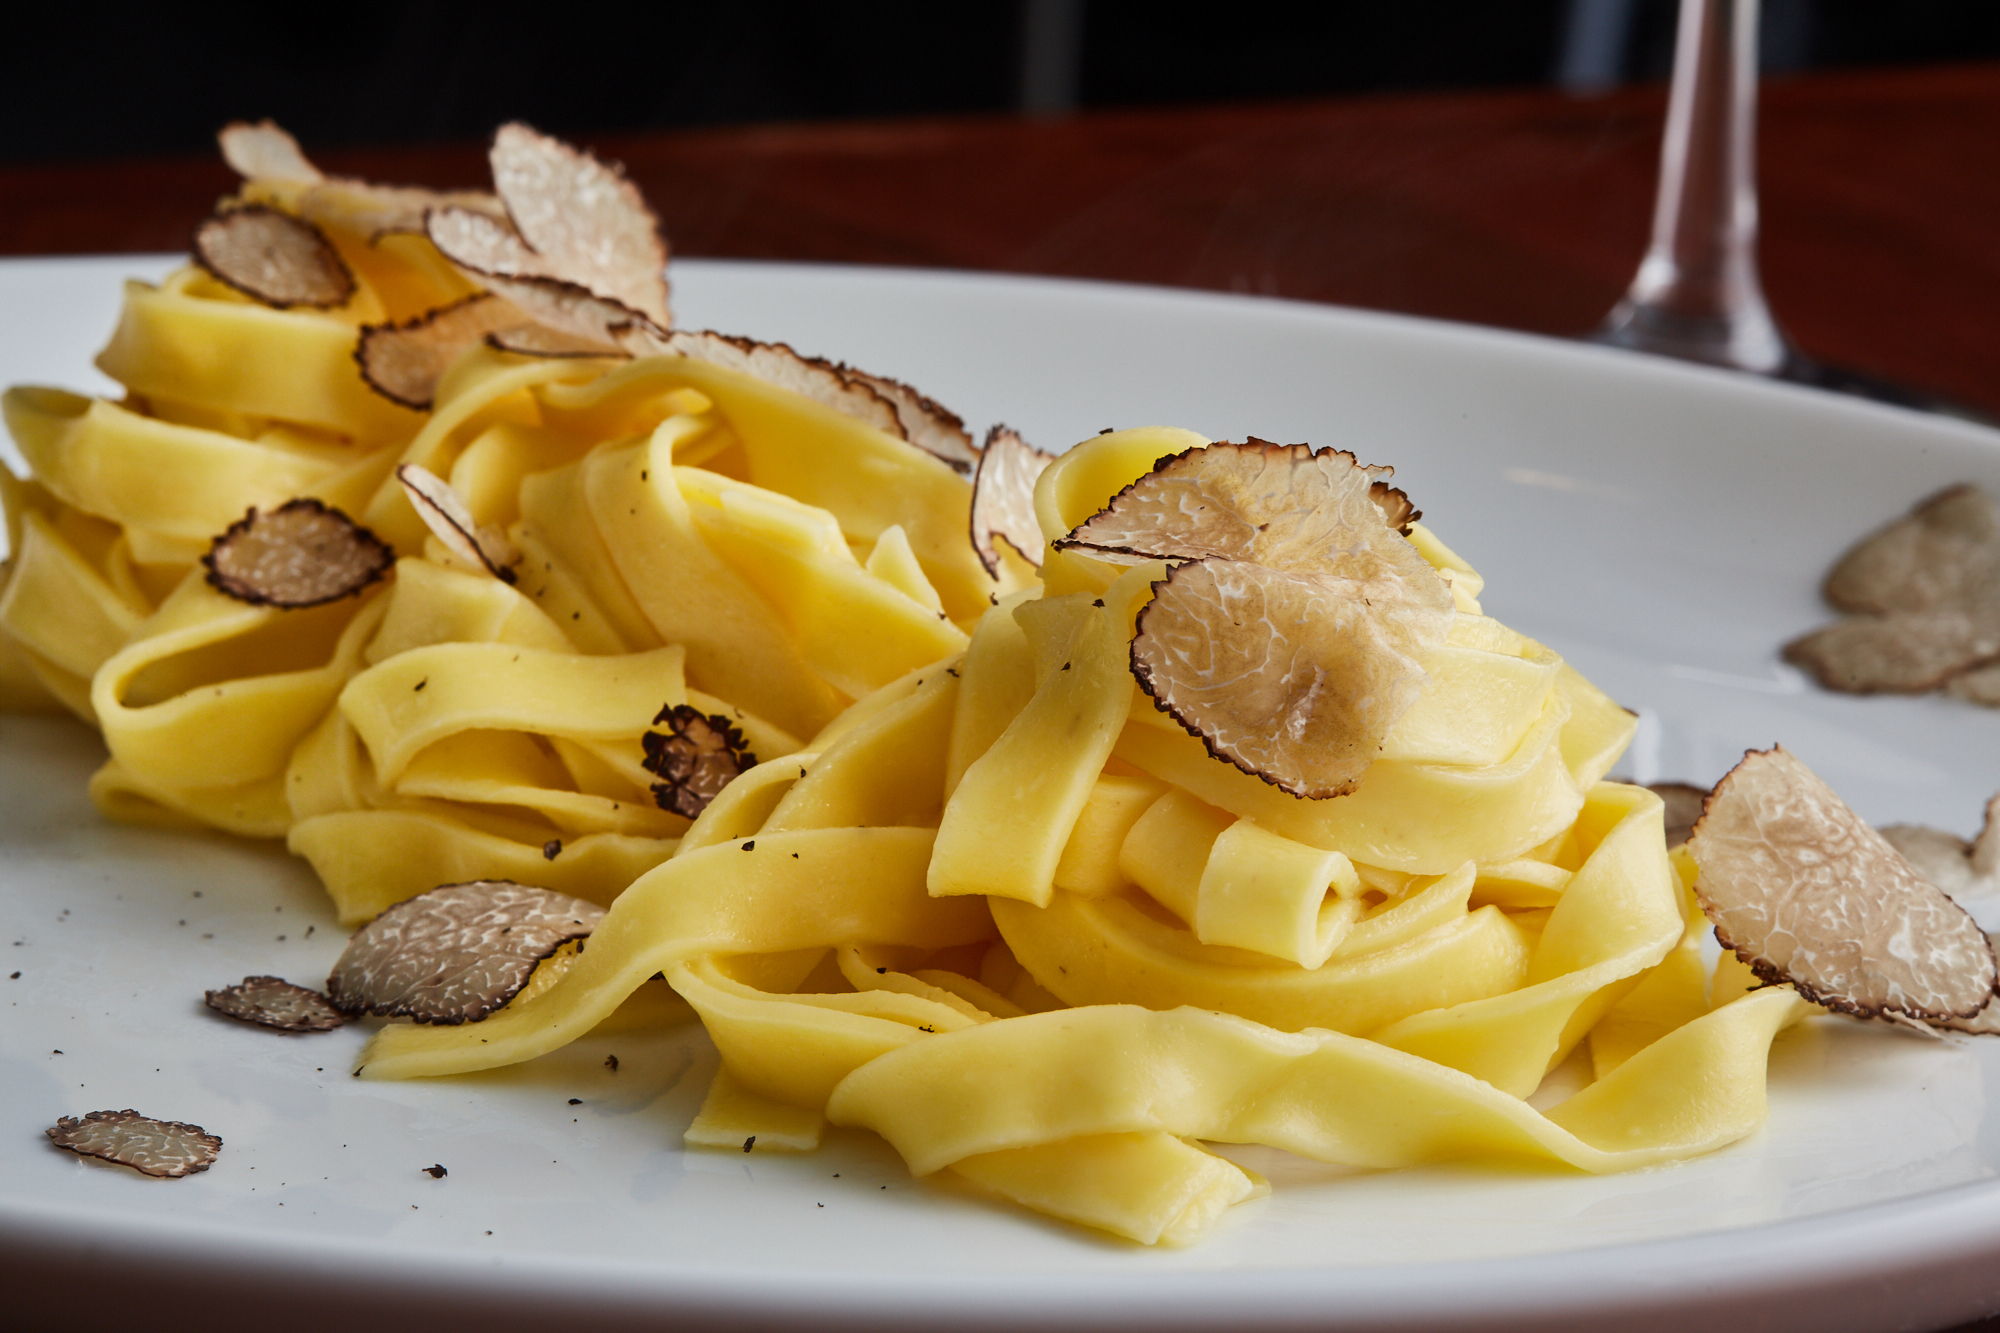 Saporita (pasta with porcini mushrooms and black truffles)